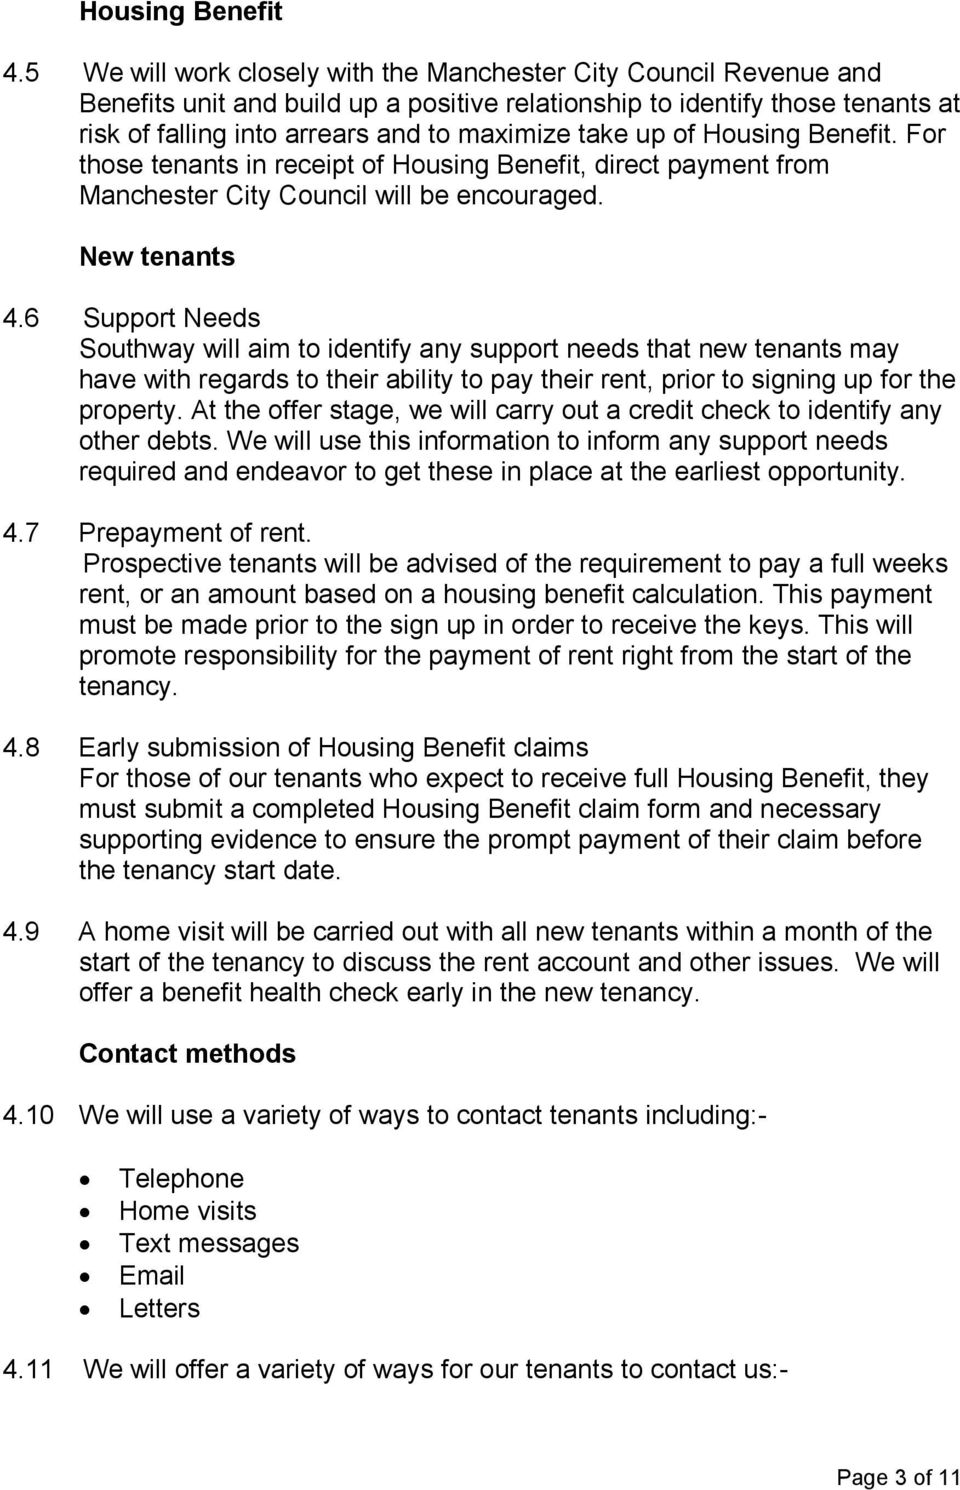 up of Housing Benefit. For those tenants in receipt of Housing Benefit, direct payment from Manchester City Council will be encouraged. New tenants 4.